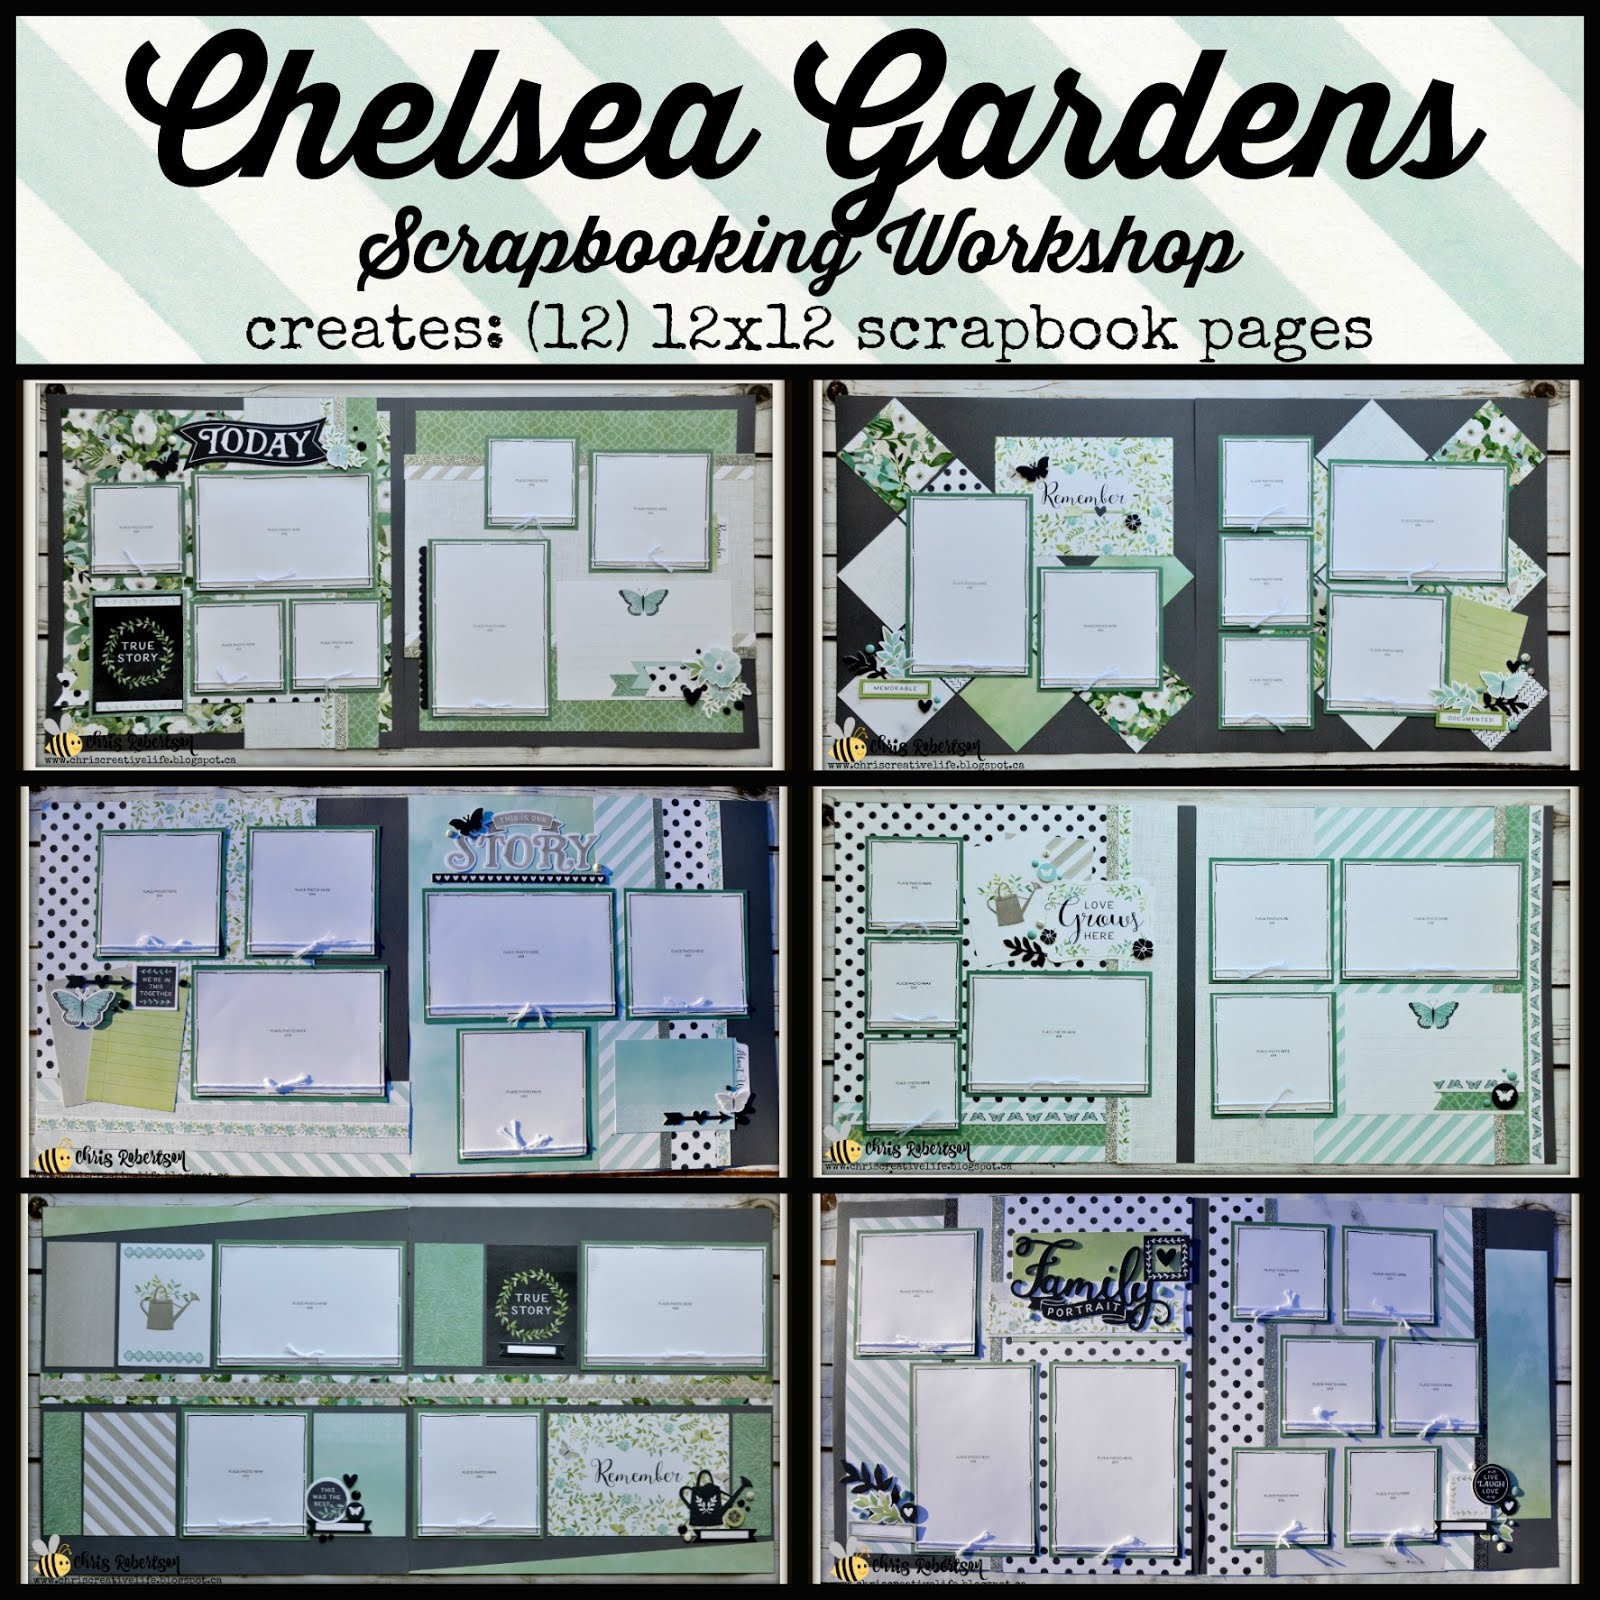 Chelsea Gardens Scrapbooking Workshop